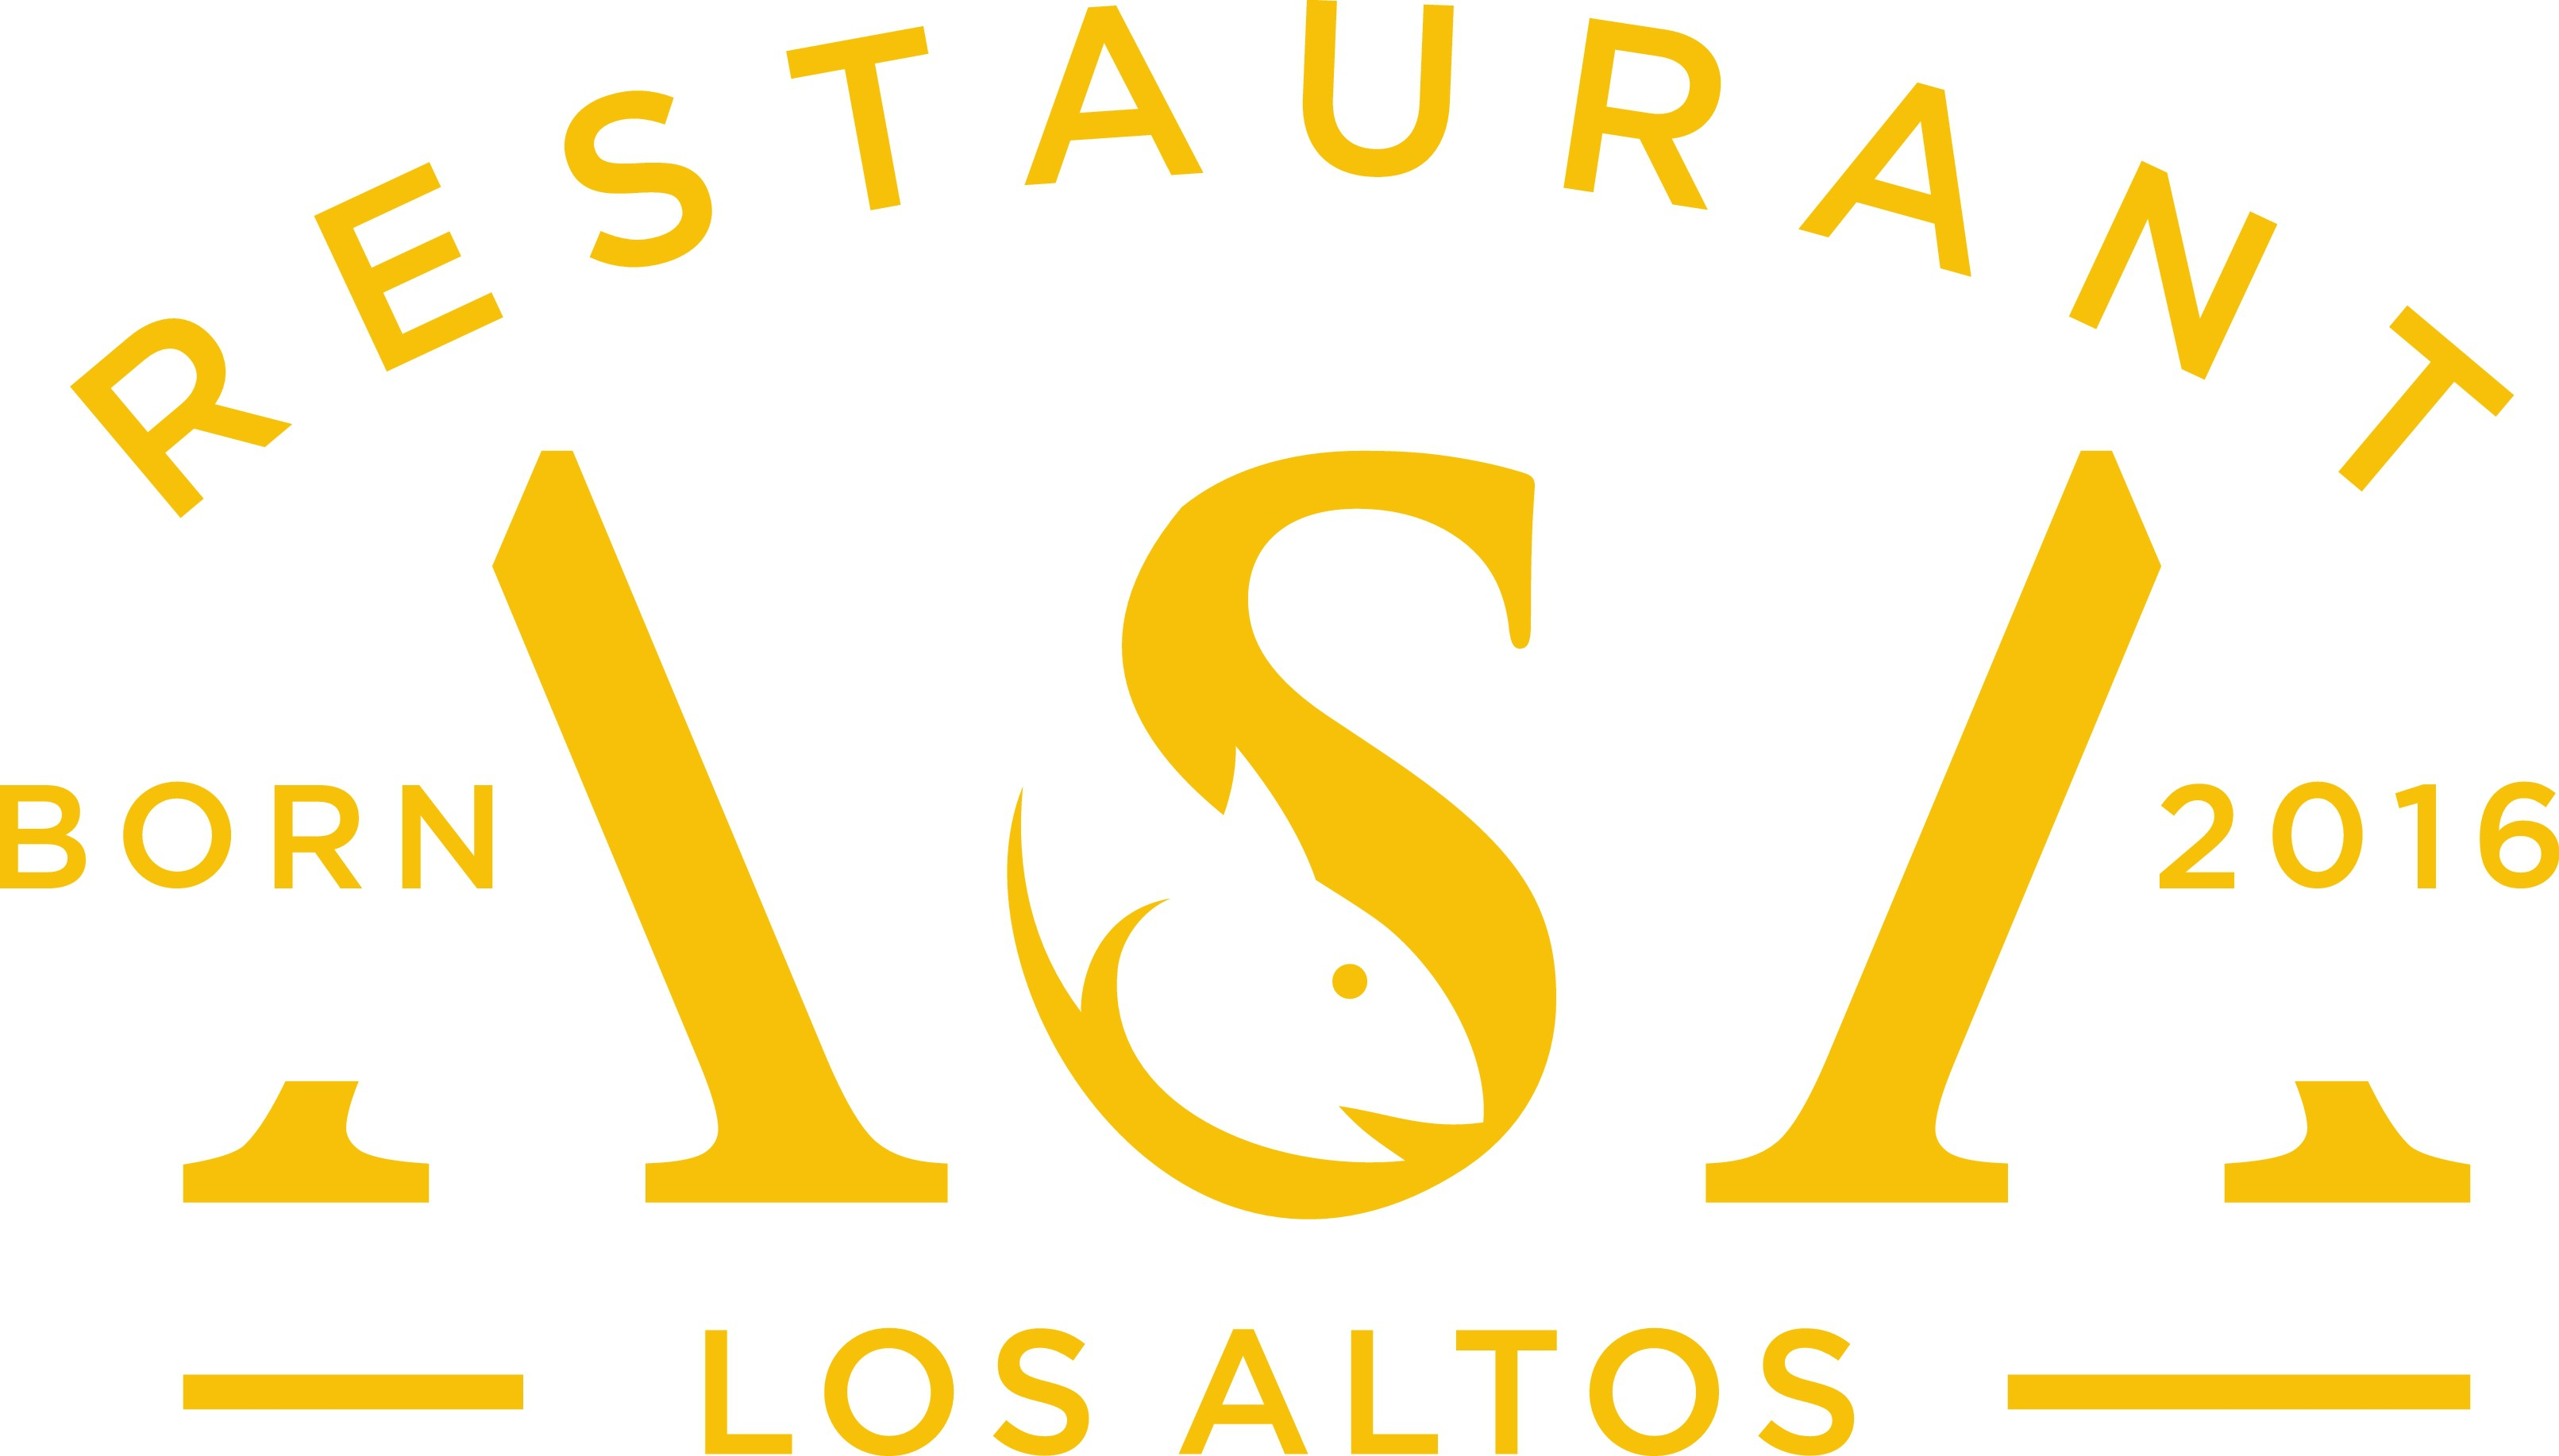 create a logo a restaurant of the highest integrity and love for land and sea.